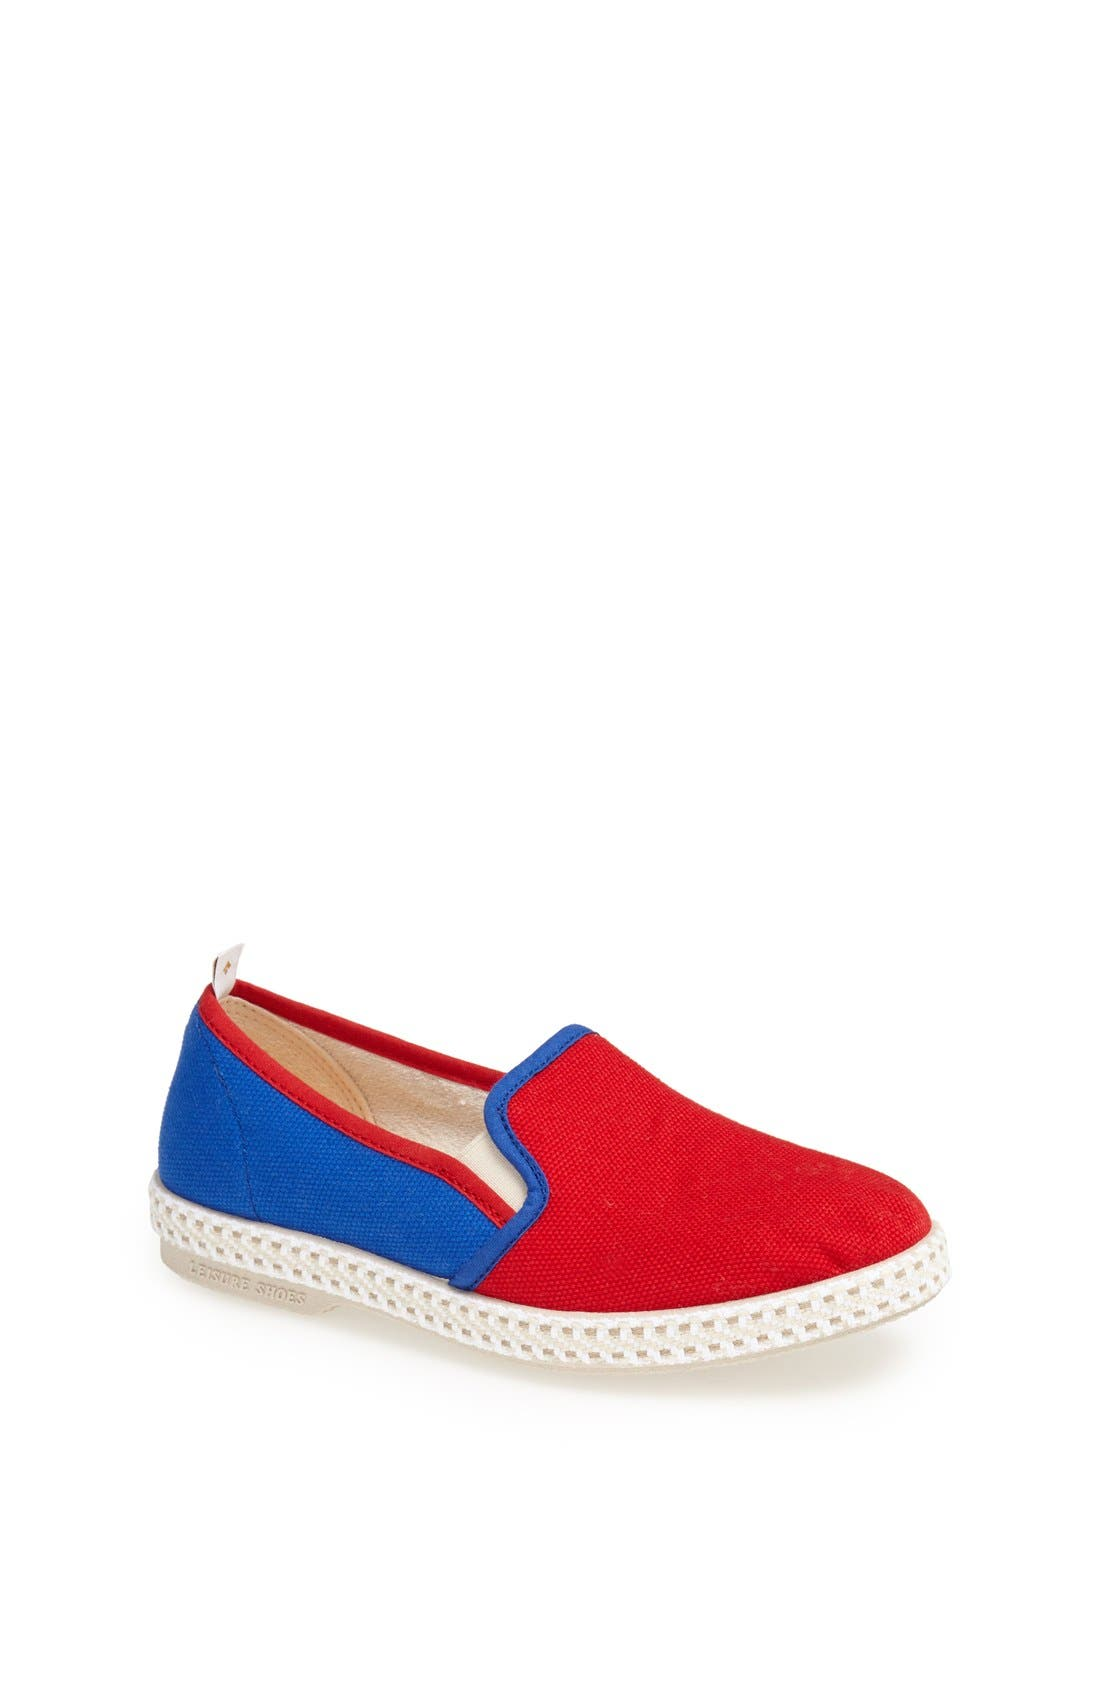 Main Image - Rivieras 'Super' Slip-On (Toddler, Little Kid & Big Kid)